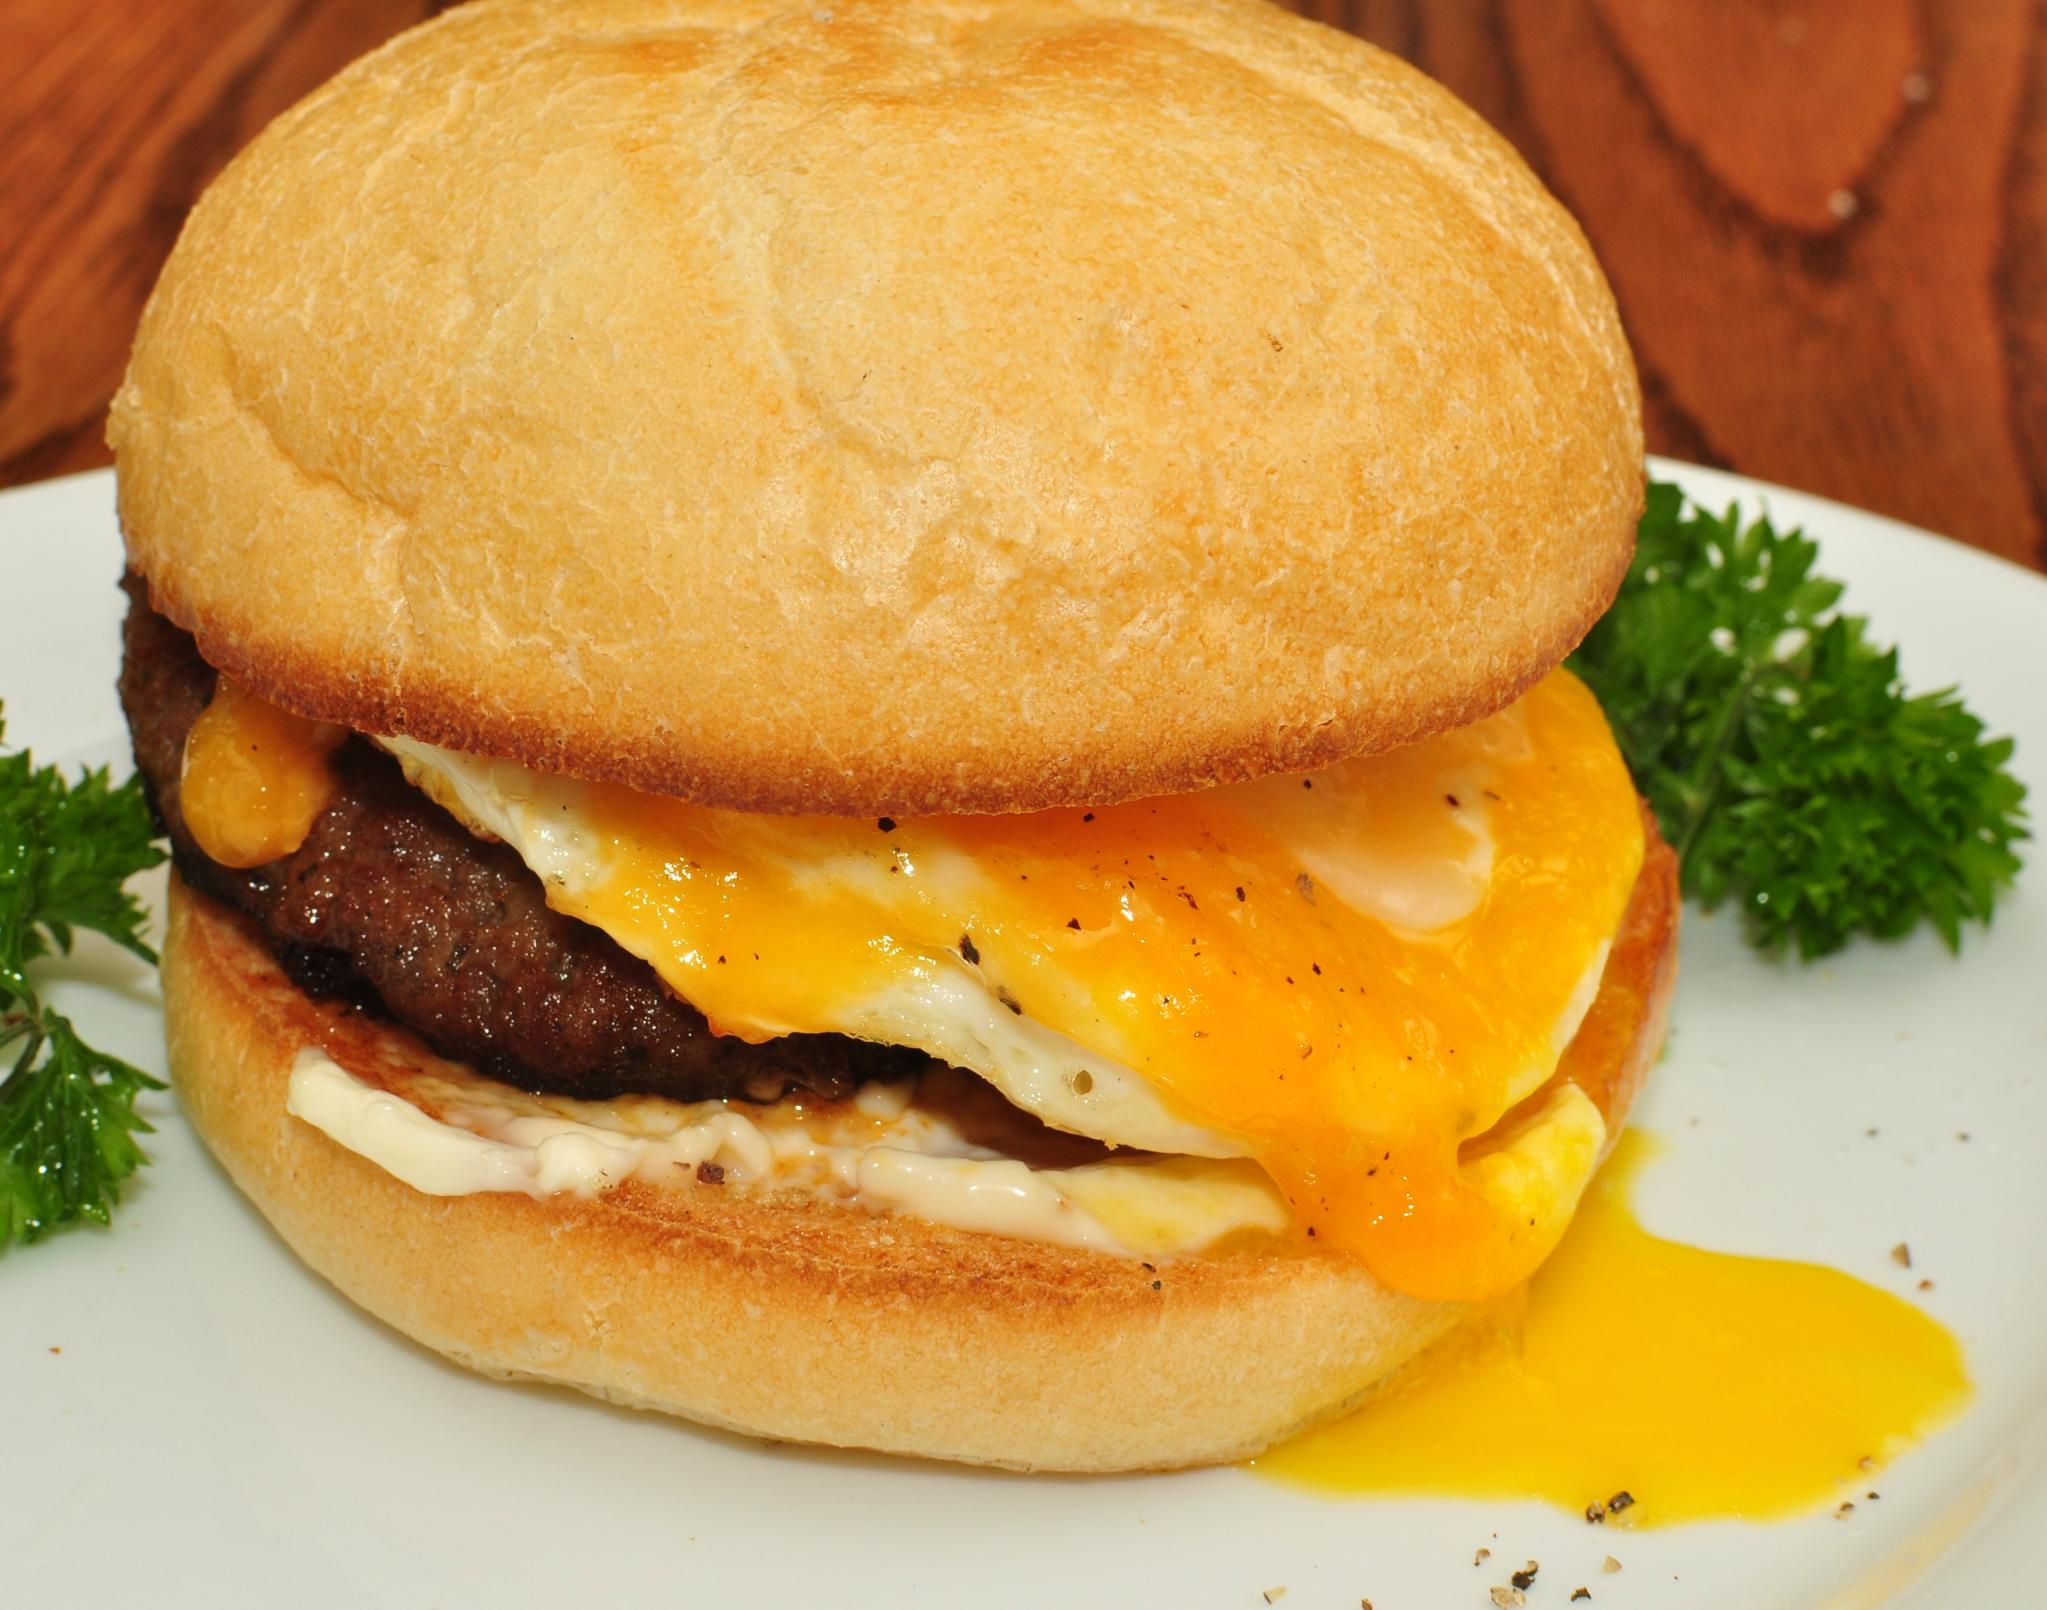 Sausage,_egg,_and_cheese_on_a_Kaiser_roll